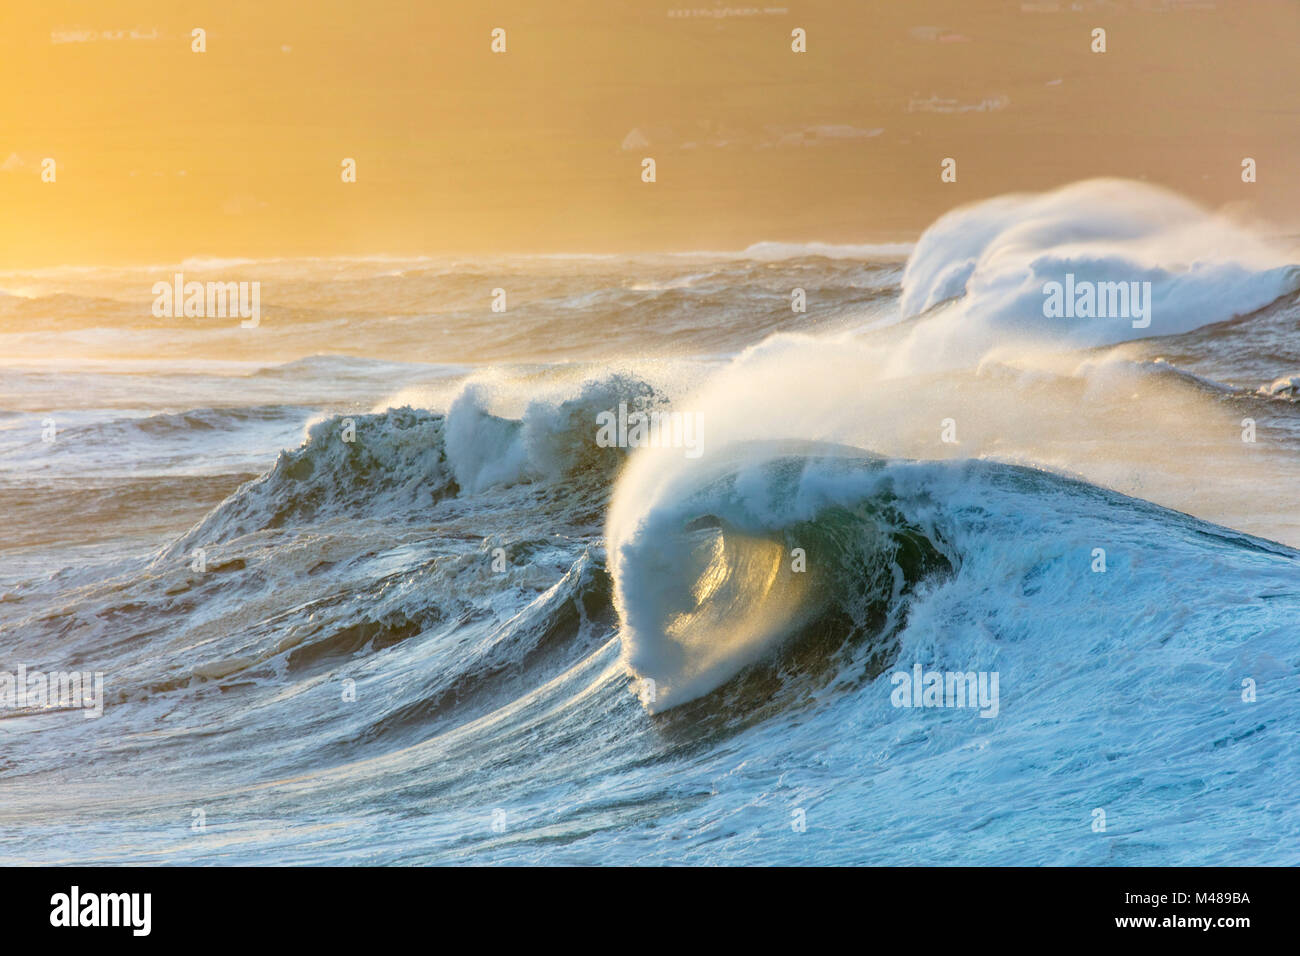 Evening storm waves in Ballycastle Bay, County Mayo, Ireland. - Stock Image